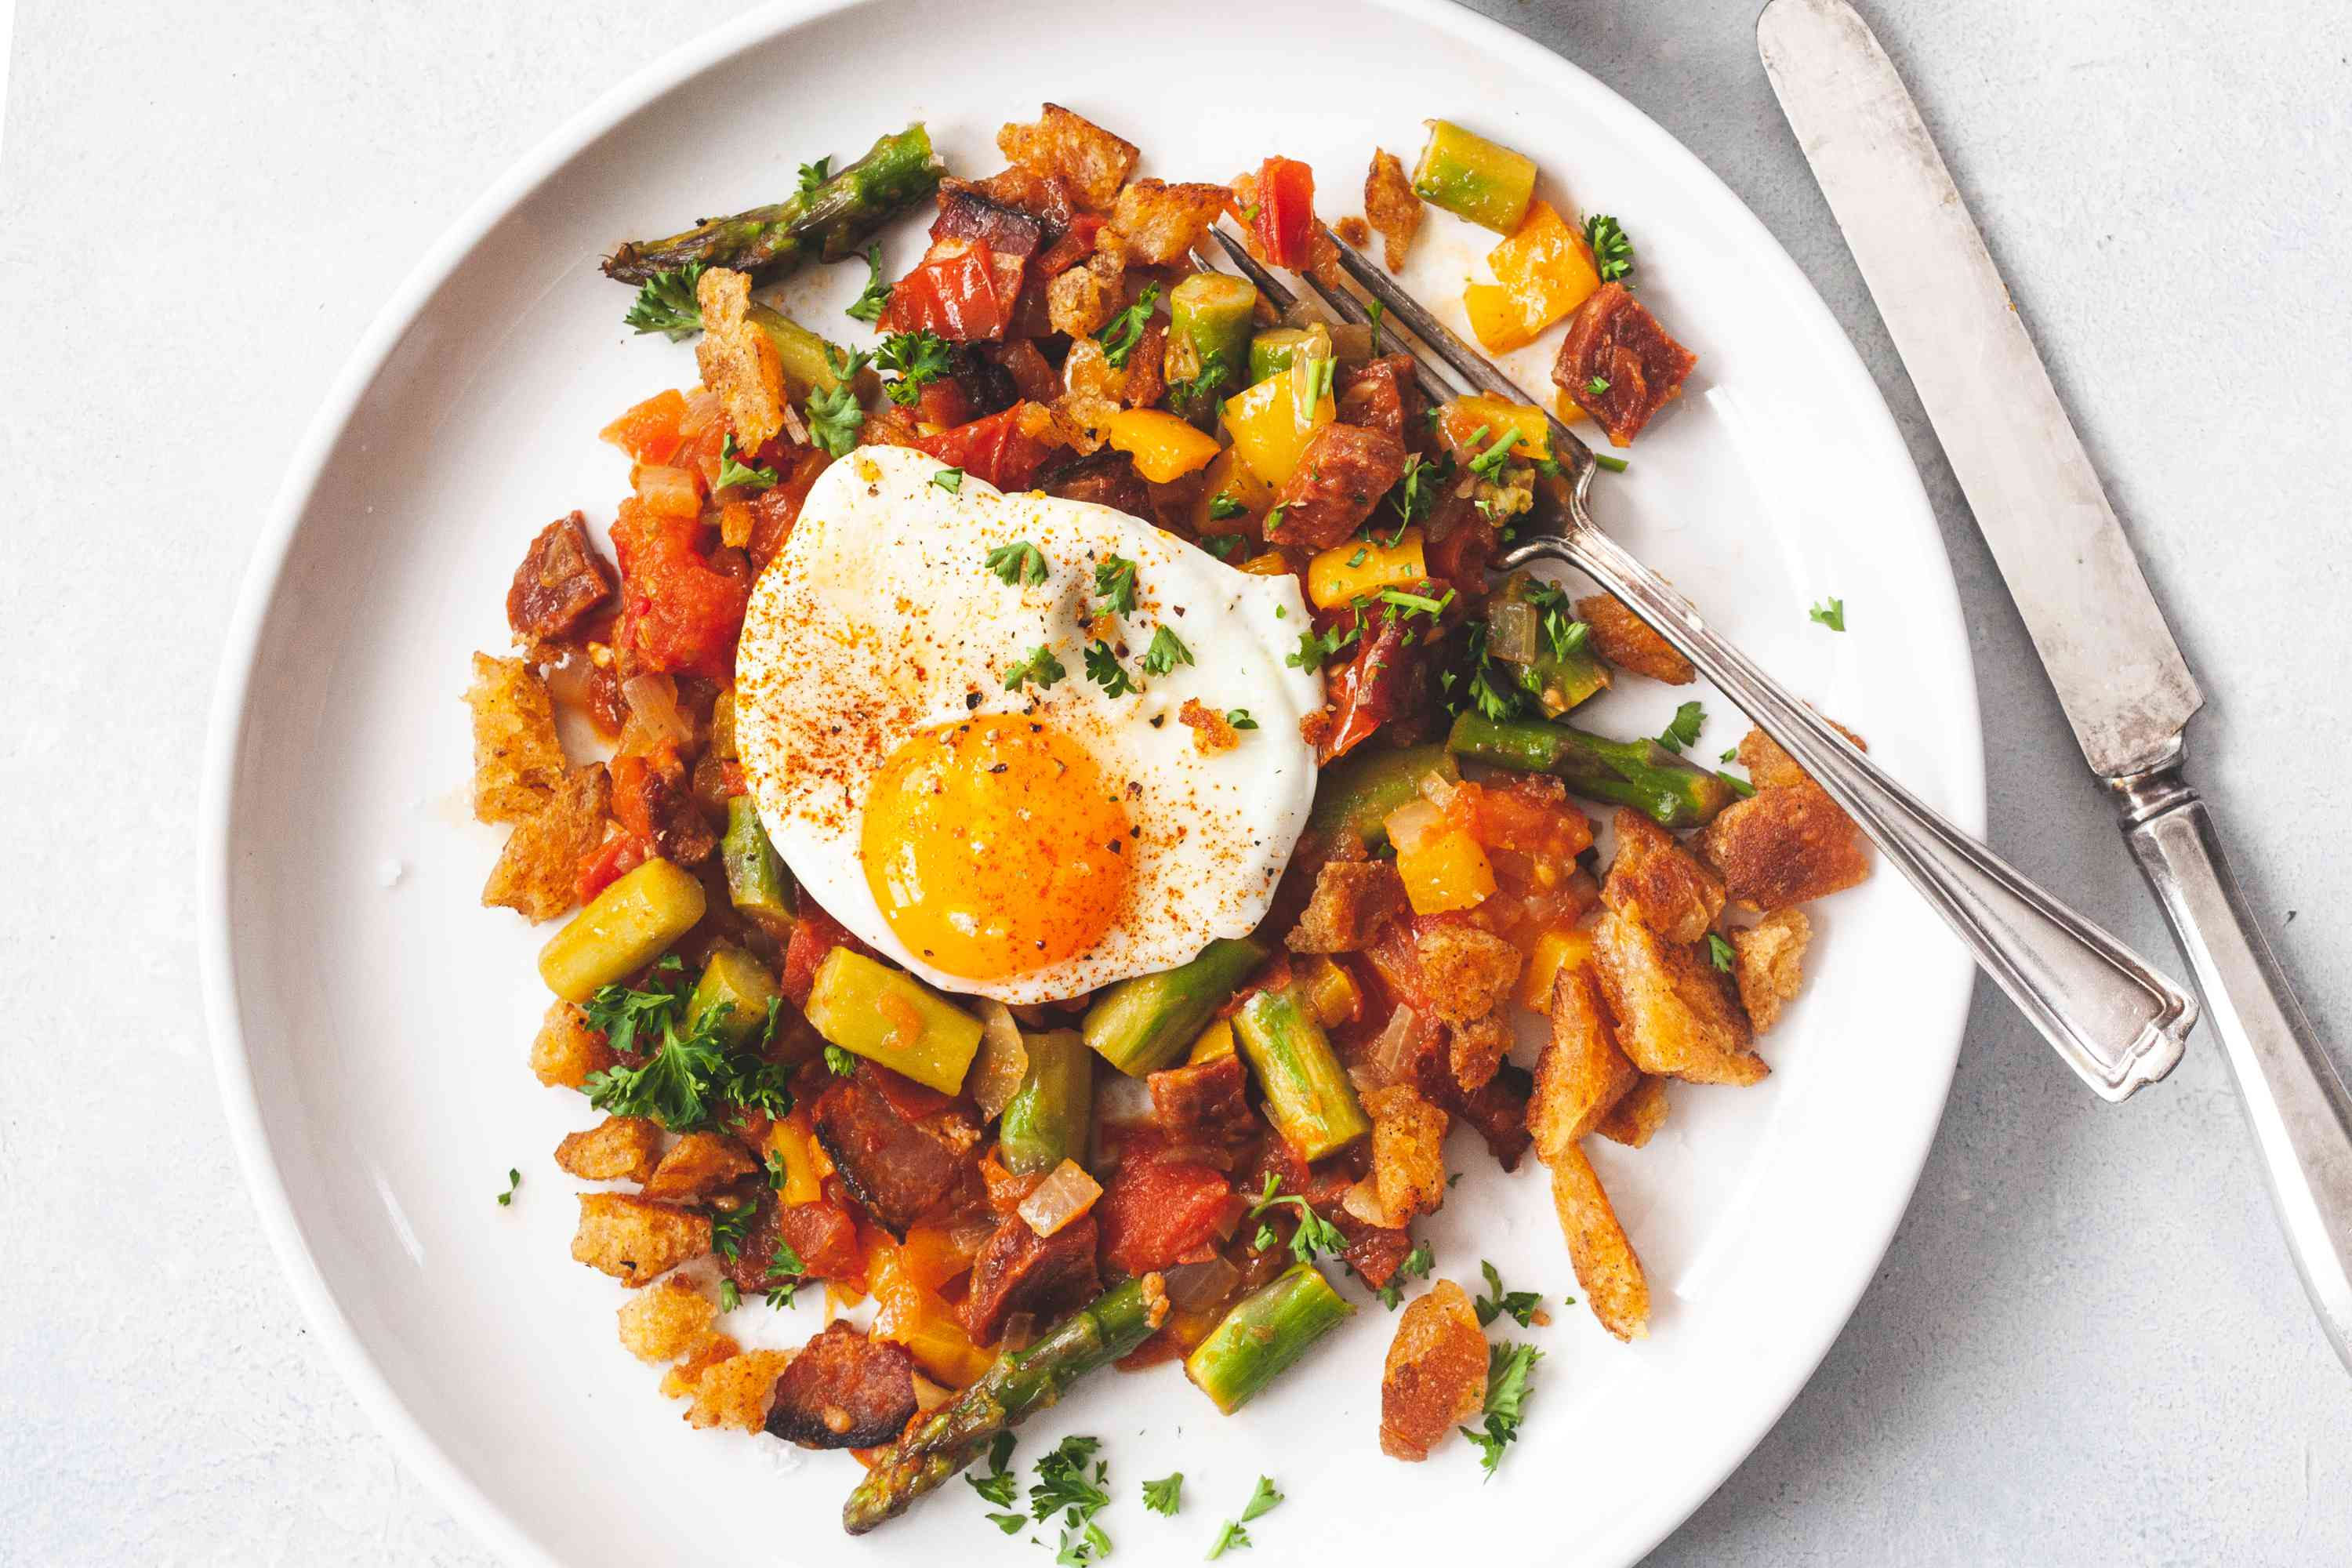 Overhead view of a white plate with Spanish Style Migas with Asparagus, Chorizo, Bacon, and Eggs.